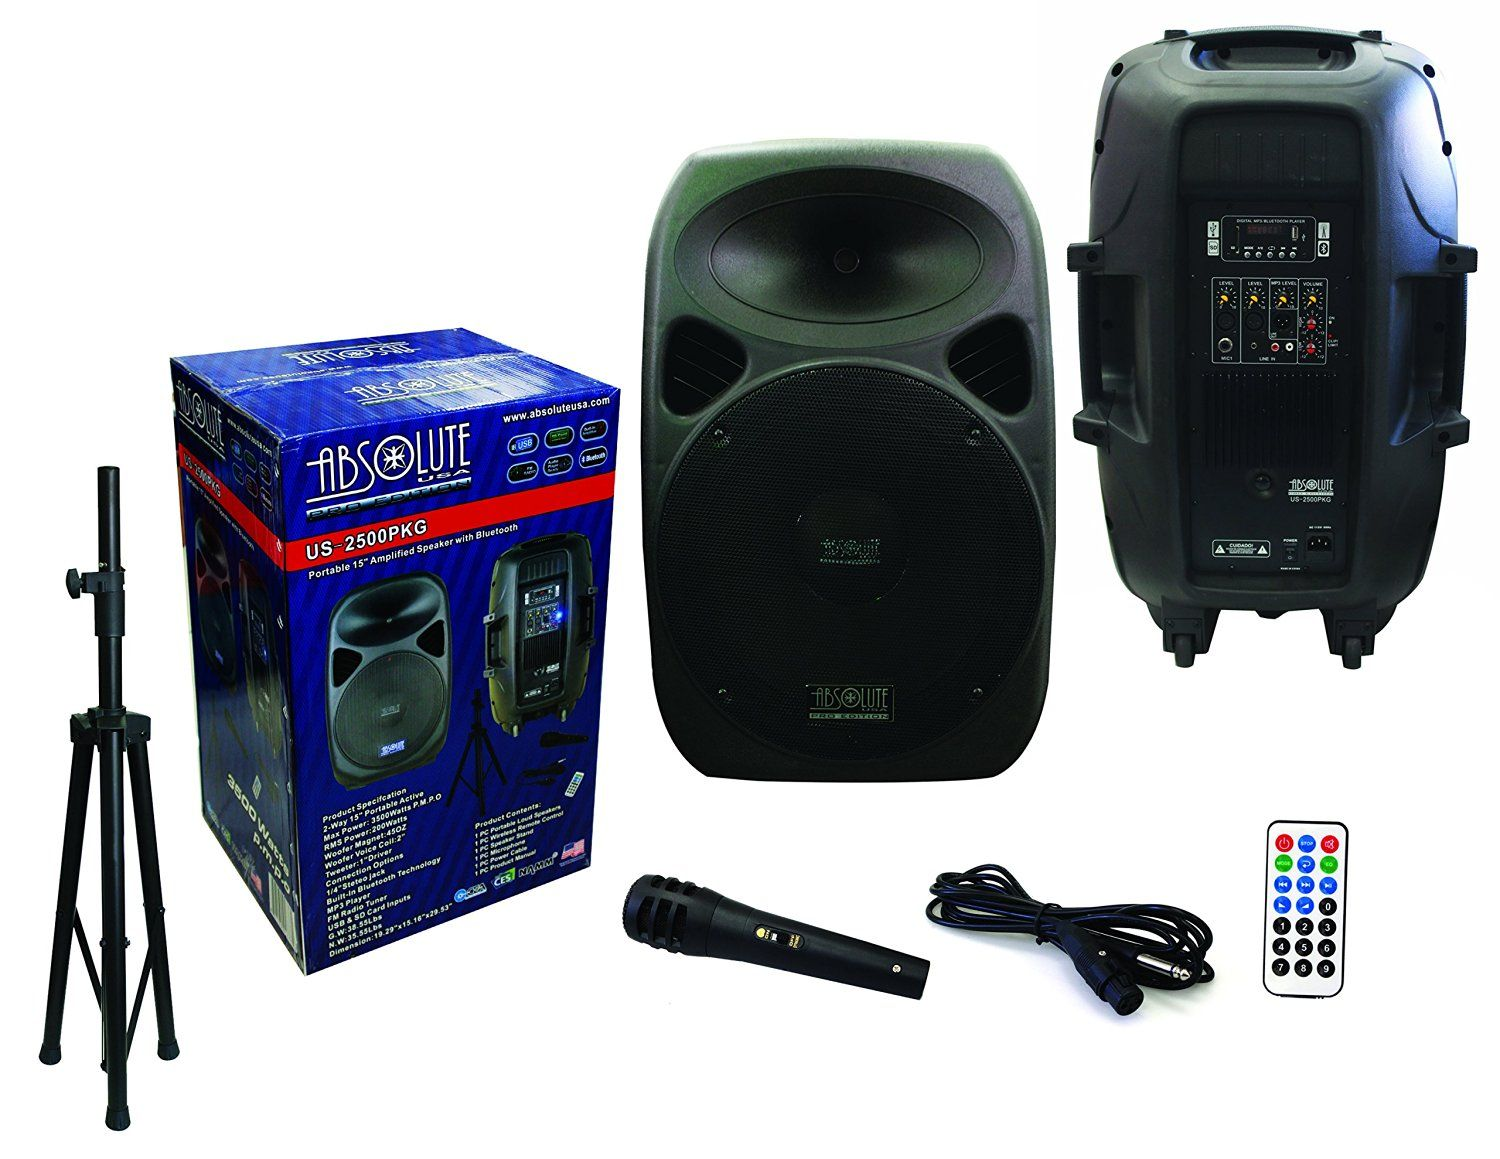 """Absolute USA US2500 2-Way 15"""" 3500W Speaker Built-In Bluetooth with Wire Microphone & Speaker Stand by ABSOLUTE ABSOLUTE"""